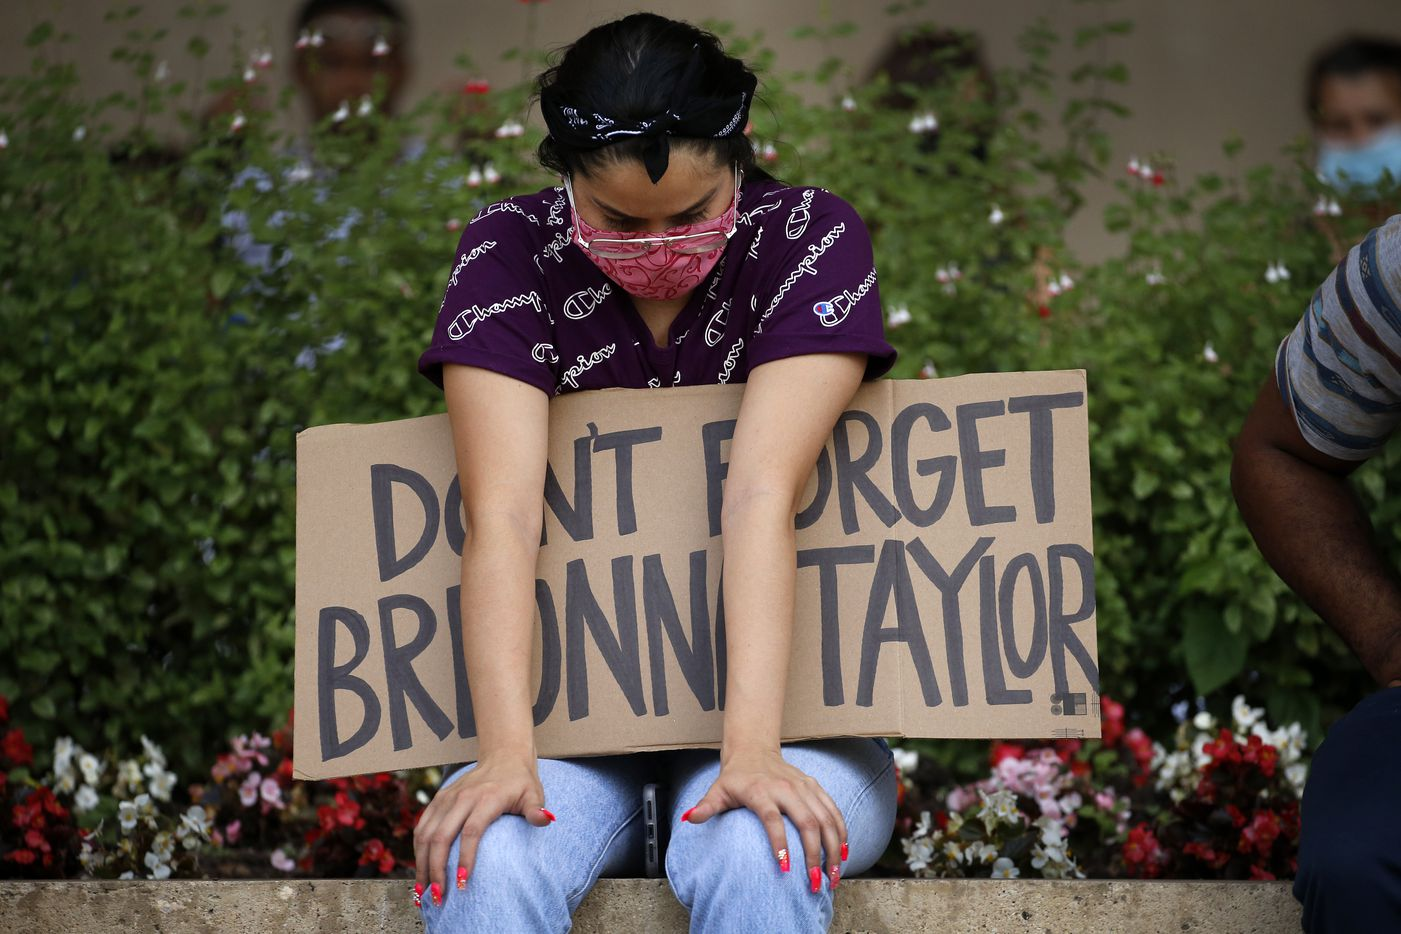 A protestor supporting Breonna Taylor came to listen to a Black Lives Matters rally at Dallas City Hall before marching through downtown Dallas to Dealey Plaza, Wednesday, June 3, 2020. (Tom Fox/The Dallas Morning News)